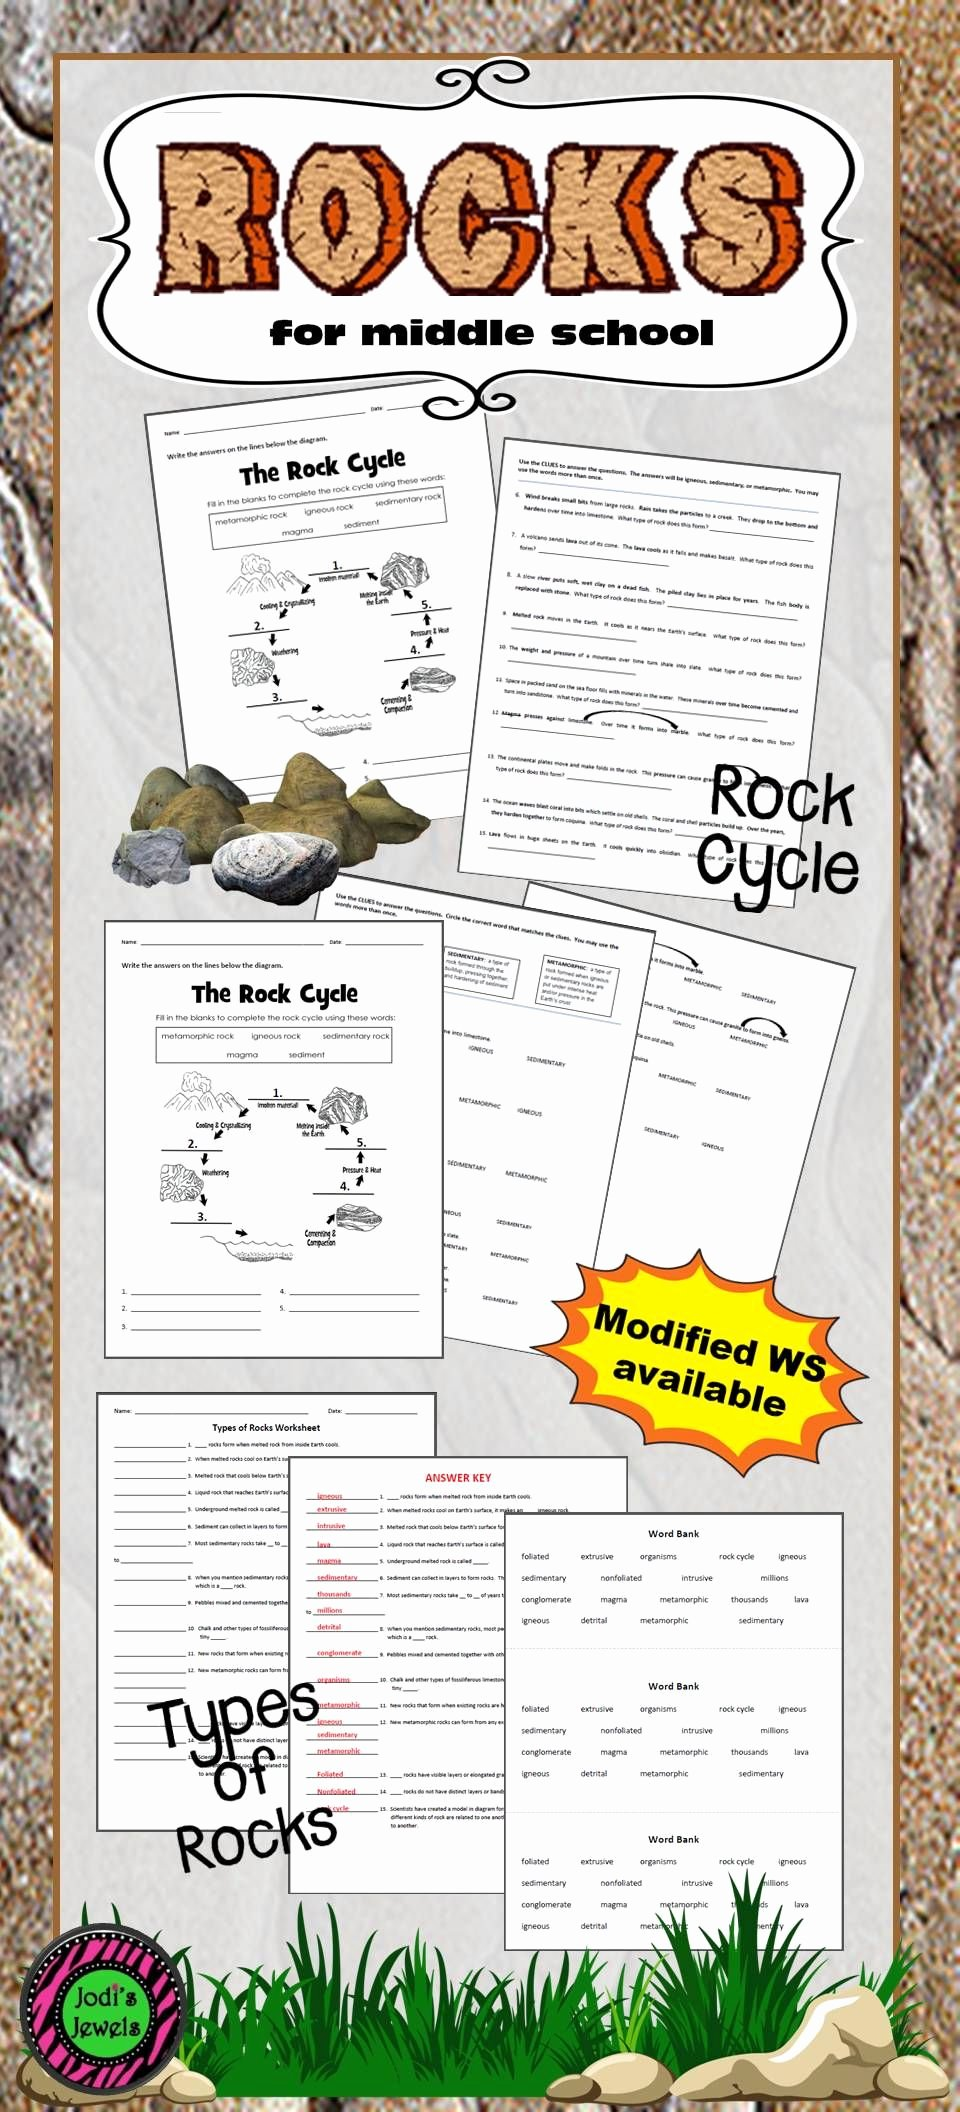 Types Of Rock Worksheet Awesome Add Worksheets About Types Of Rocks and the Rock Cycle to